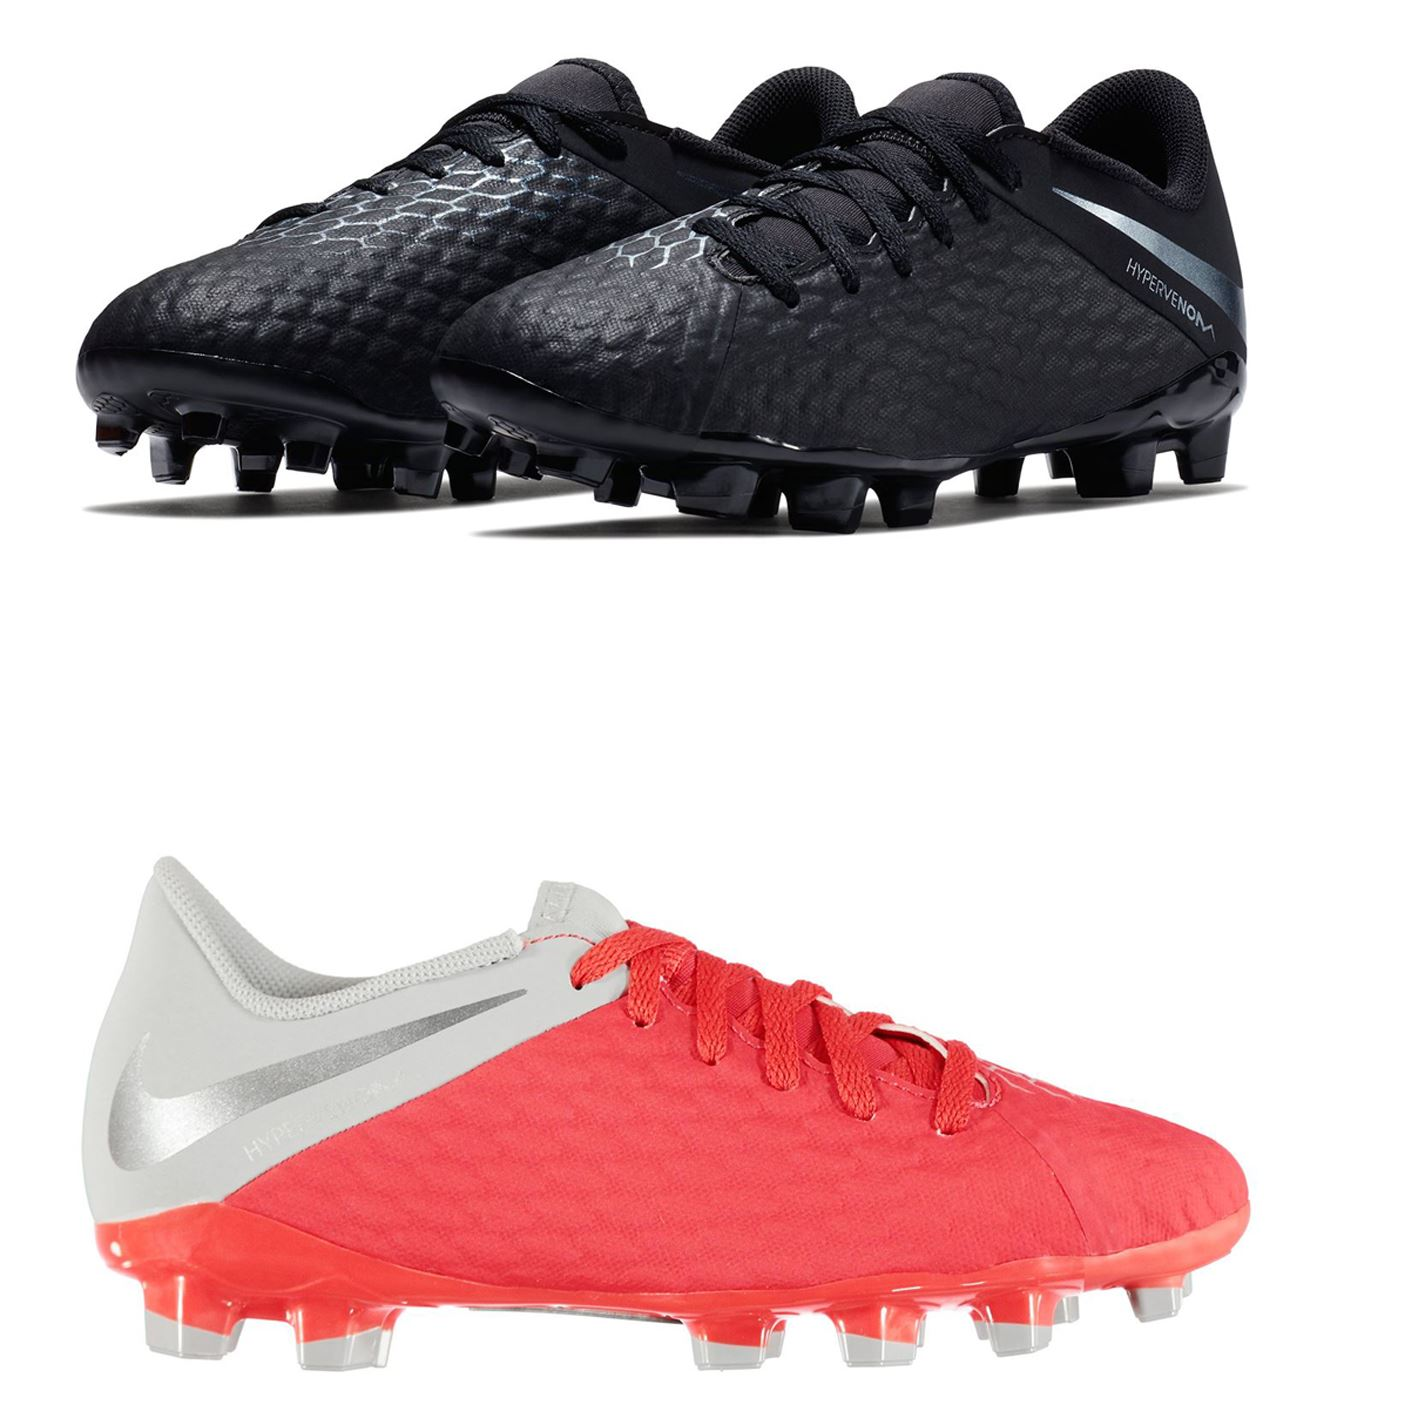 sports shoes 1985c 81aa9 Details about Nike Hypervenom Phantom Academy Firm Ground Football Boots  Childs Soccer Cleats